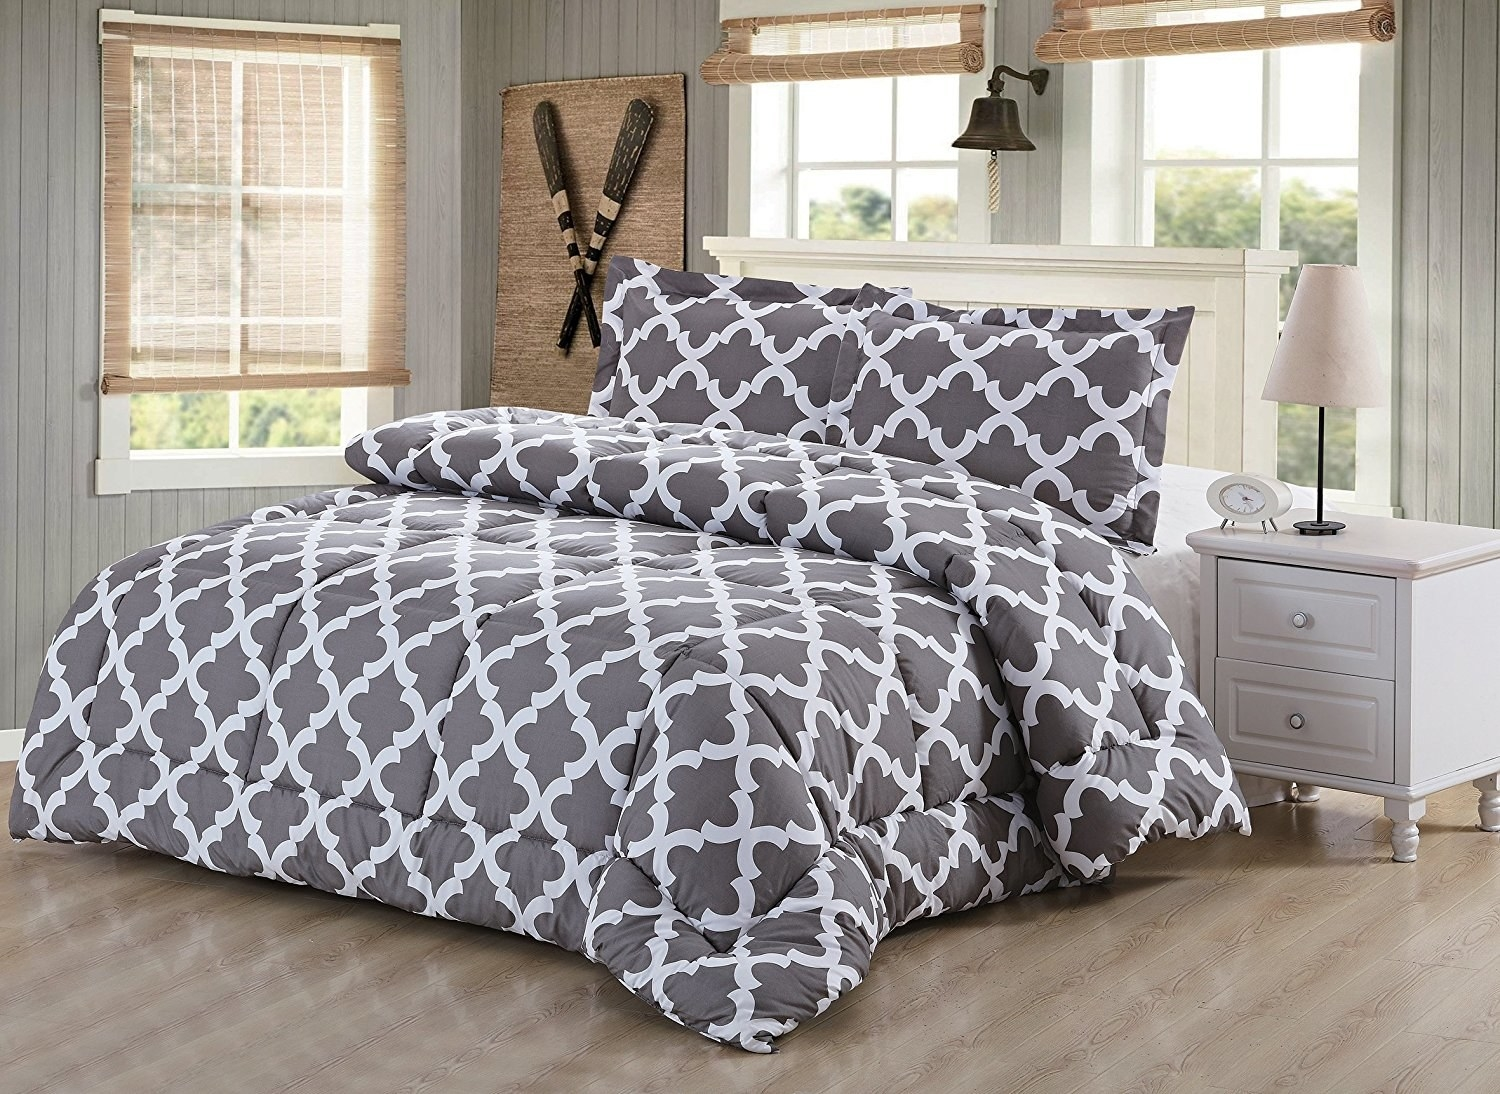 A Down Alternative Patterned Comforter Set, Because When You Pick A Classic  Design, It Means Staying In Bed Never Gets *old*.